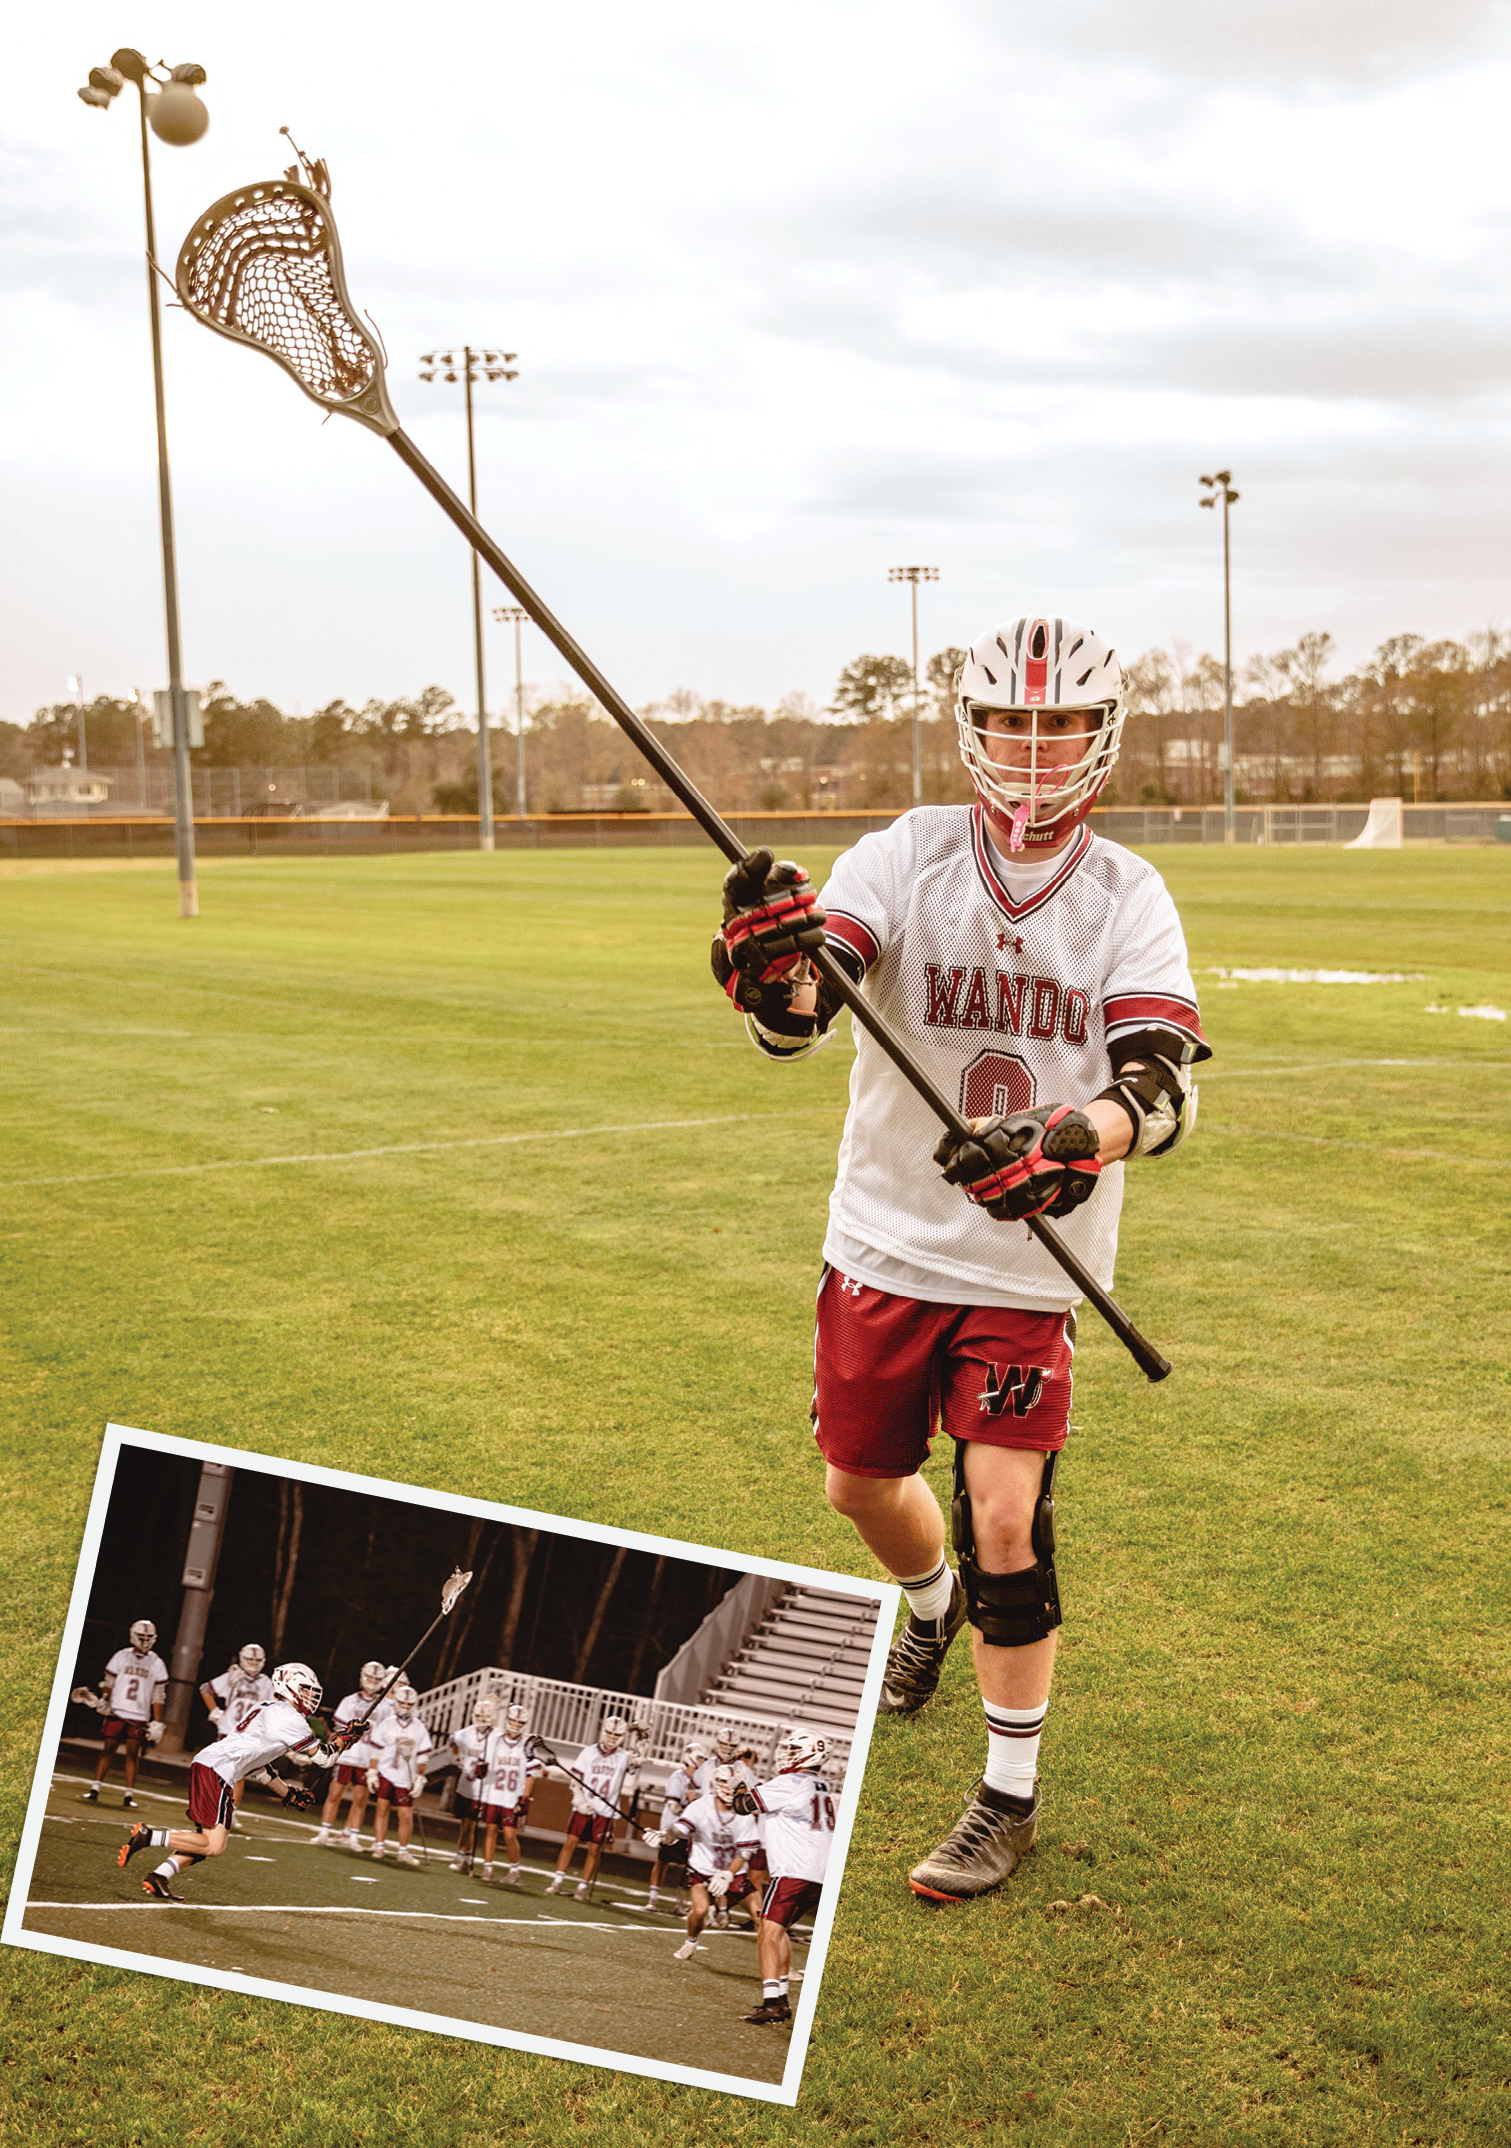 """""""It actually didn't hurt—I ran off the field and was ready to go back into the game,"""" says Mount Pleasant teen Henry Maloney, who was surprised to learn he had an ACL tear. Almost one year later, and after undergoing reconstruction surgery, Henry is healed and back on the lacrosse field."""